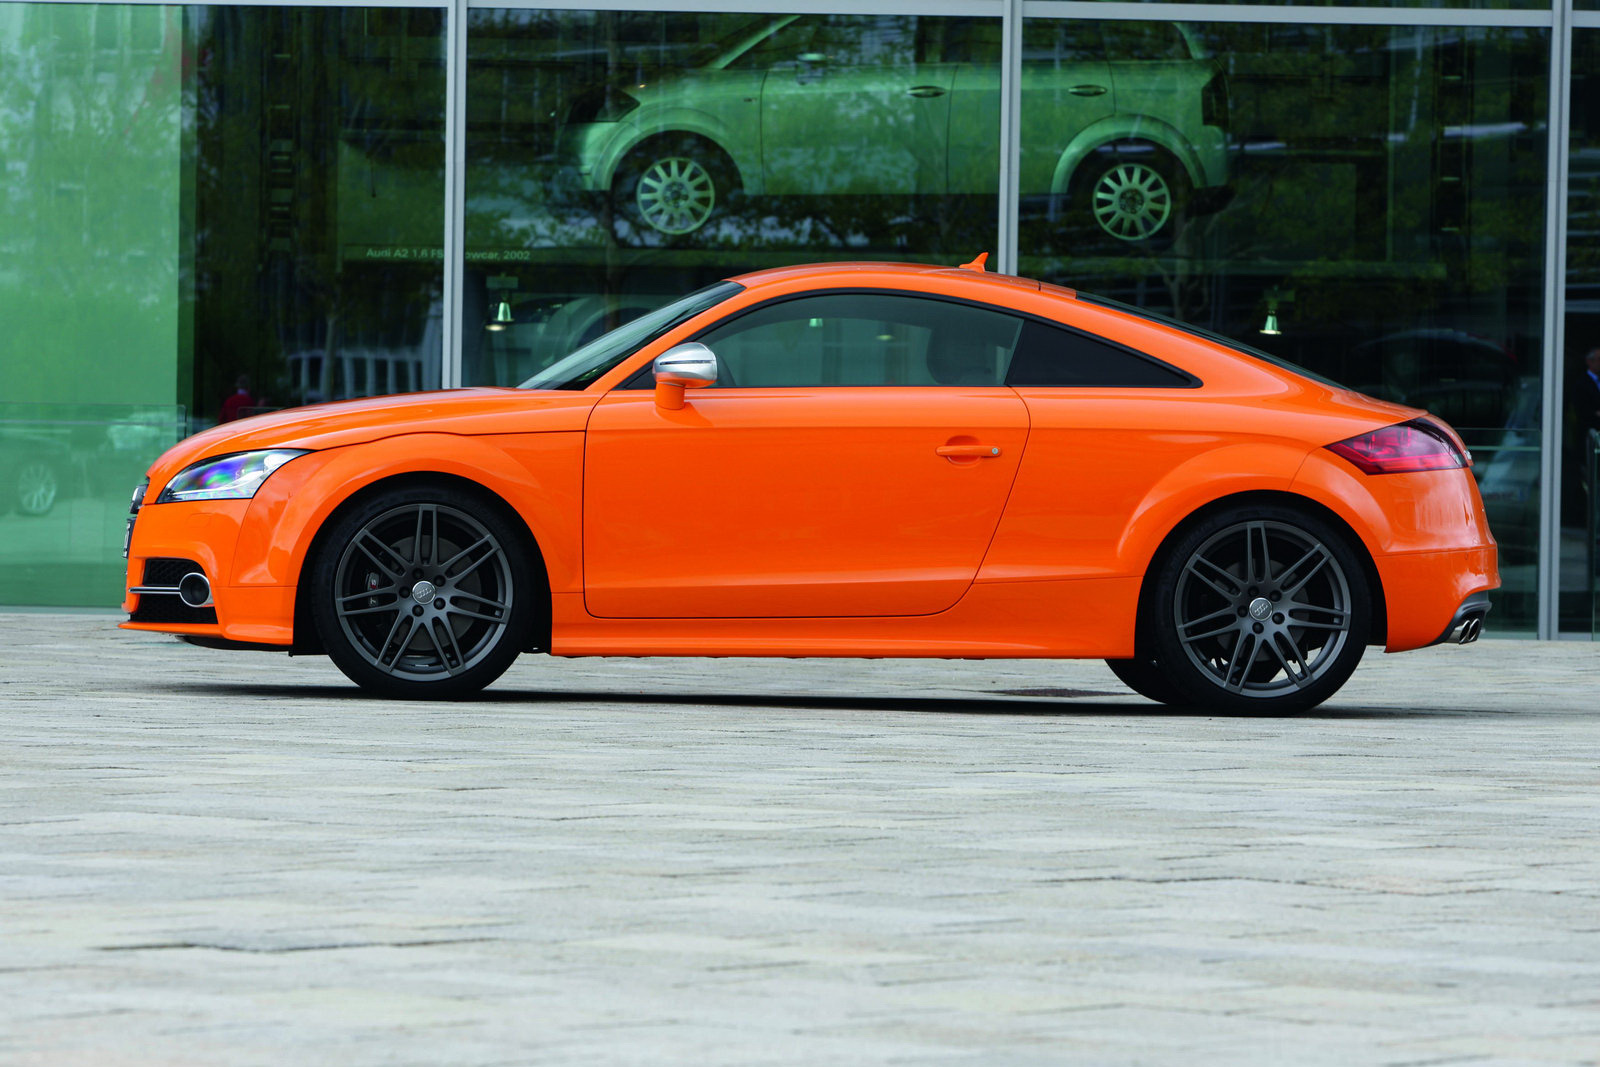 2011 Audi TTS Coupe: New Photos Of Facelift Model